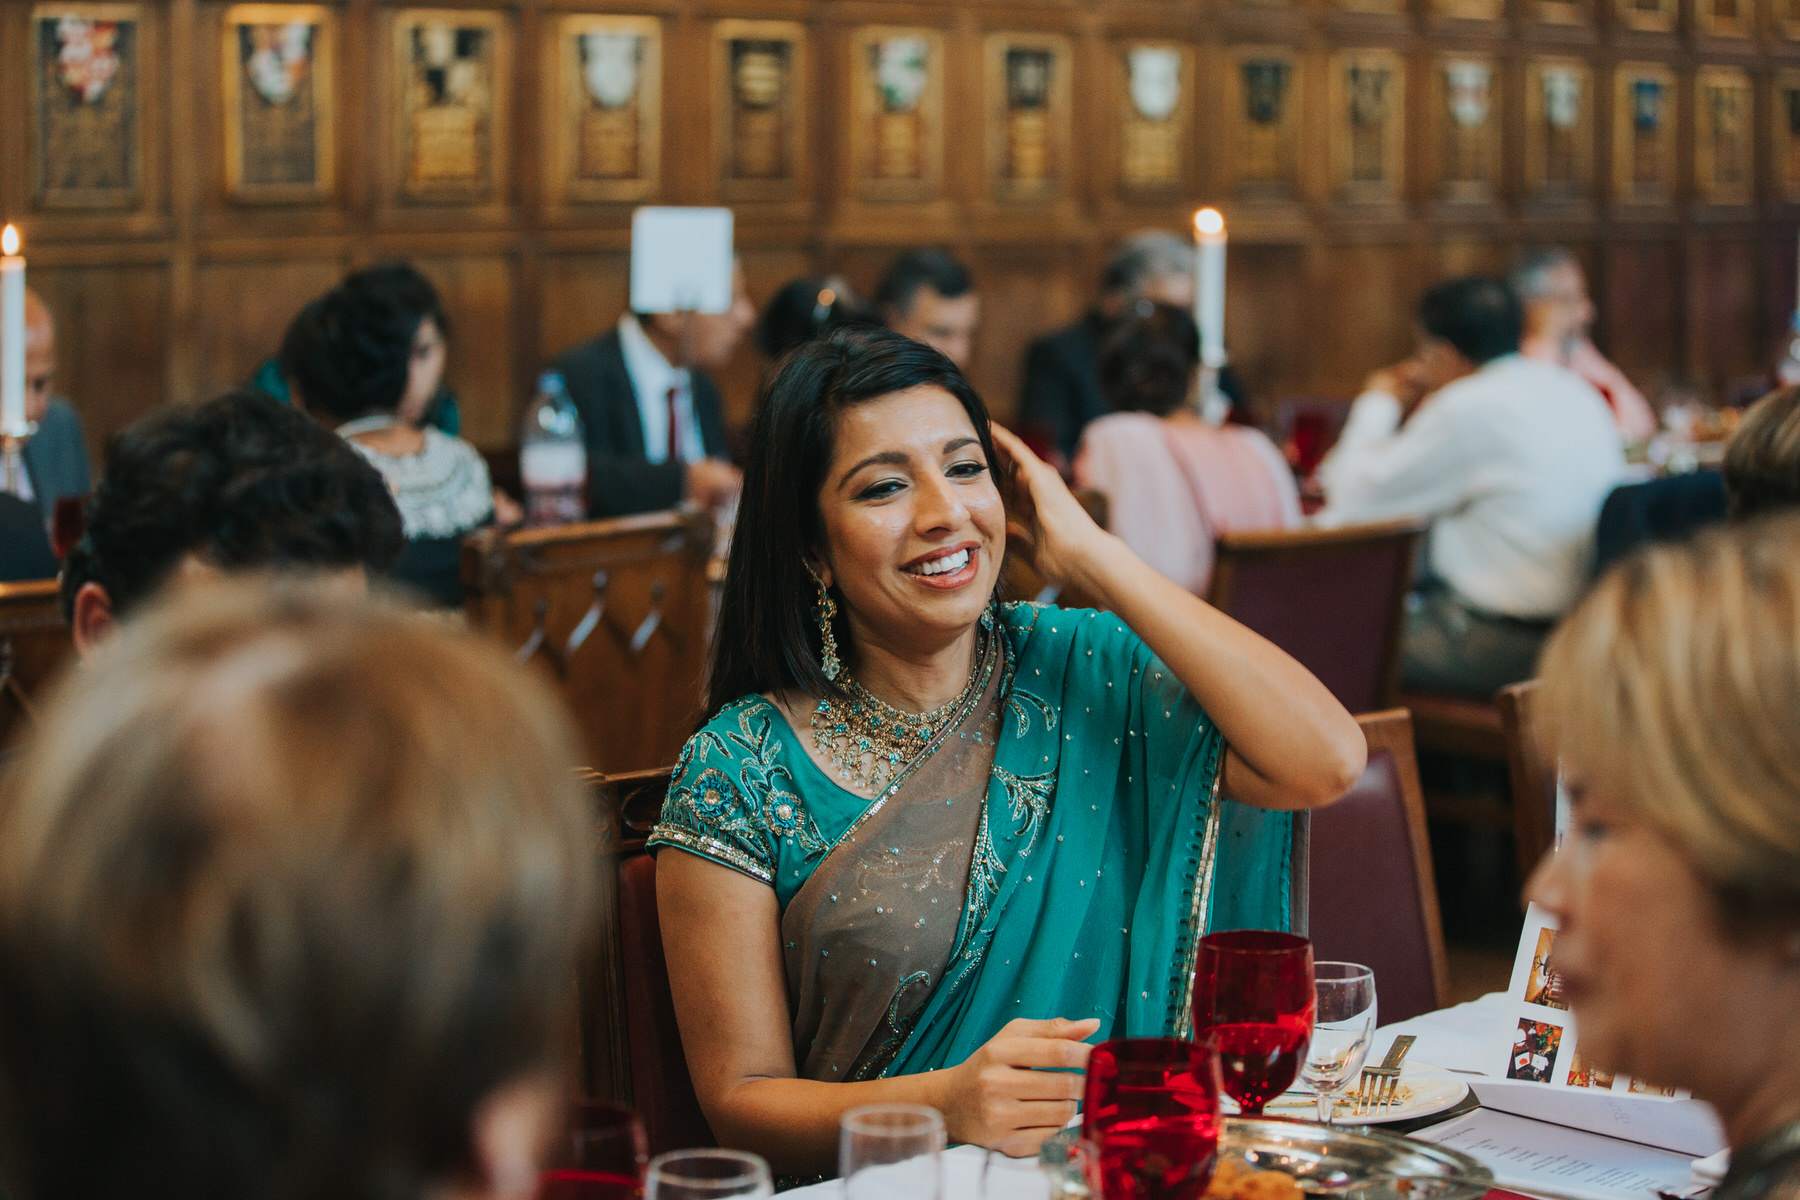 194-Anglo-Asian-London-Wedding-photos-guests.jpg